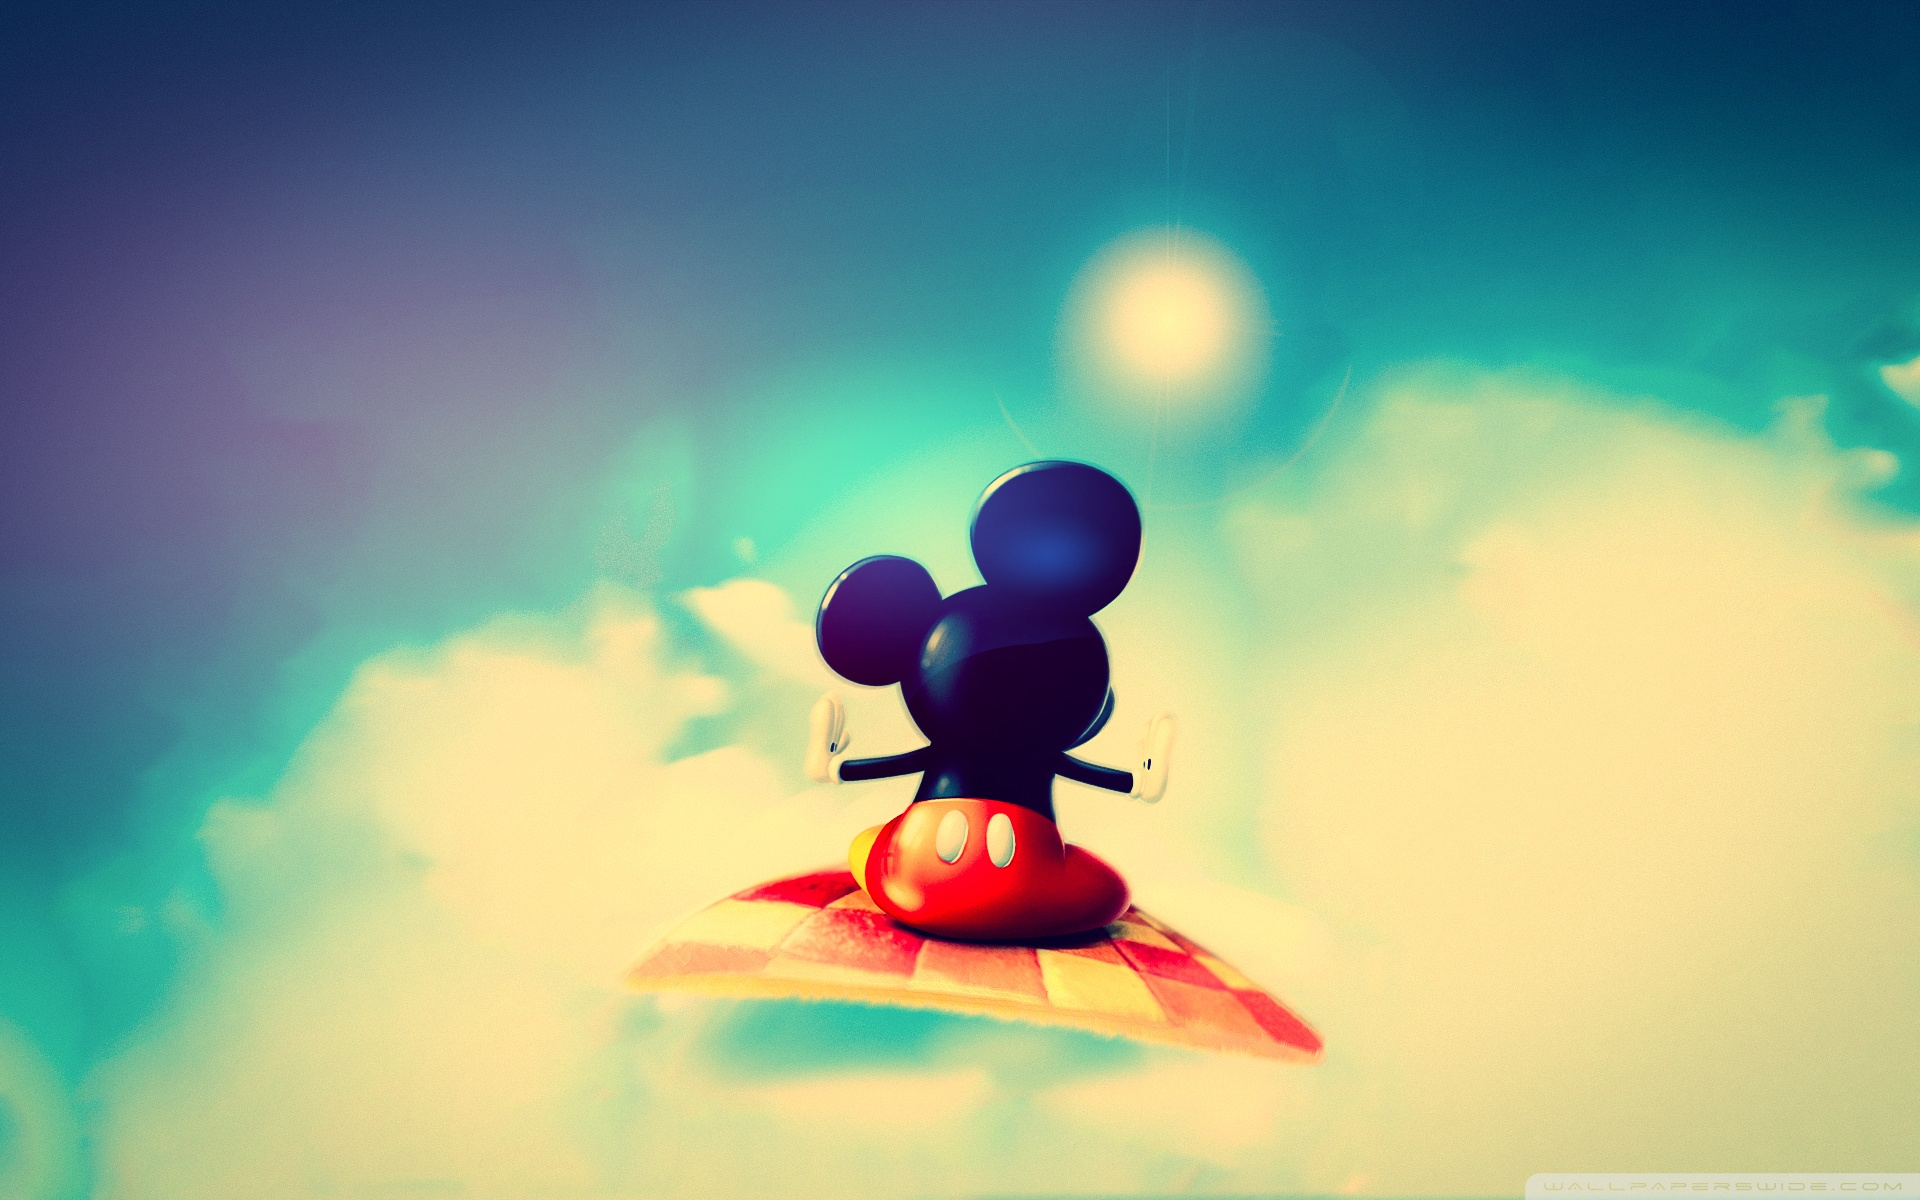 50 Disney Screensavers And Wallpaper On Wallpapersafari